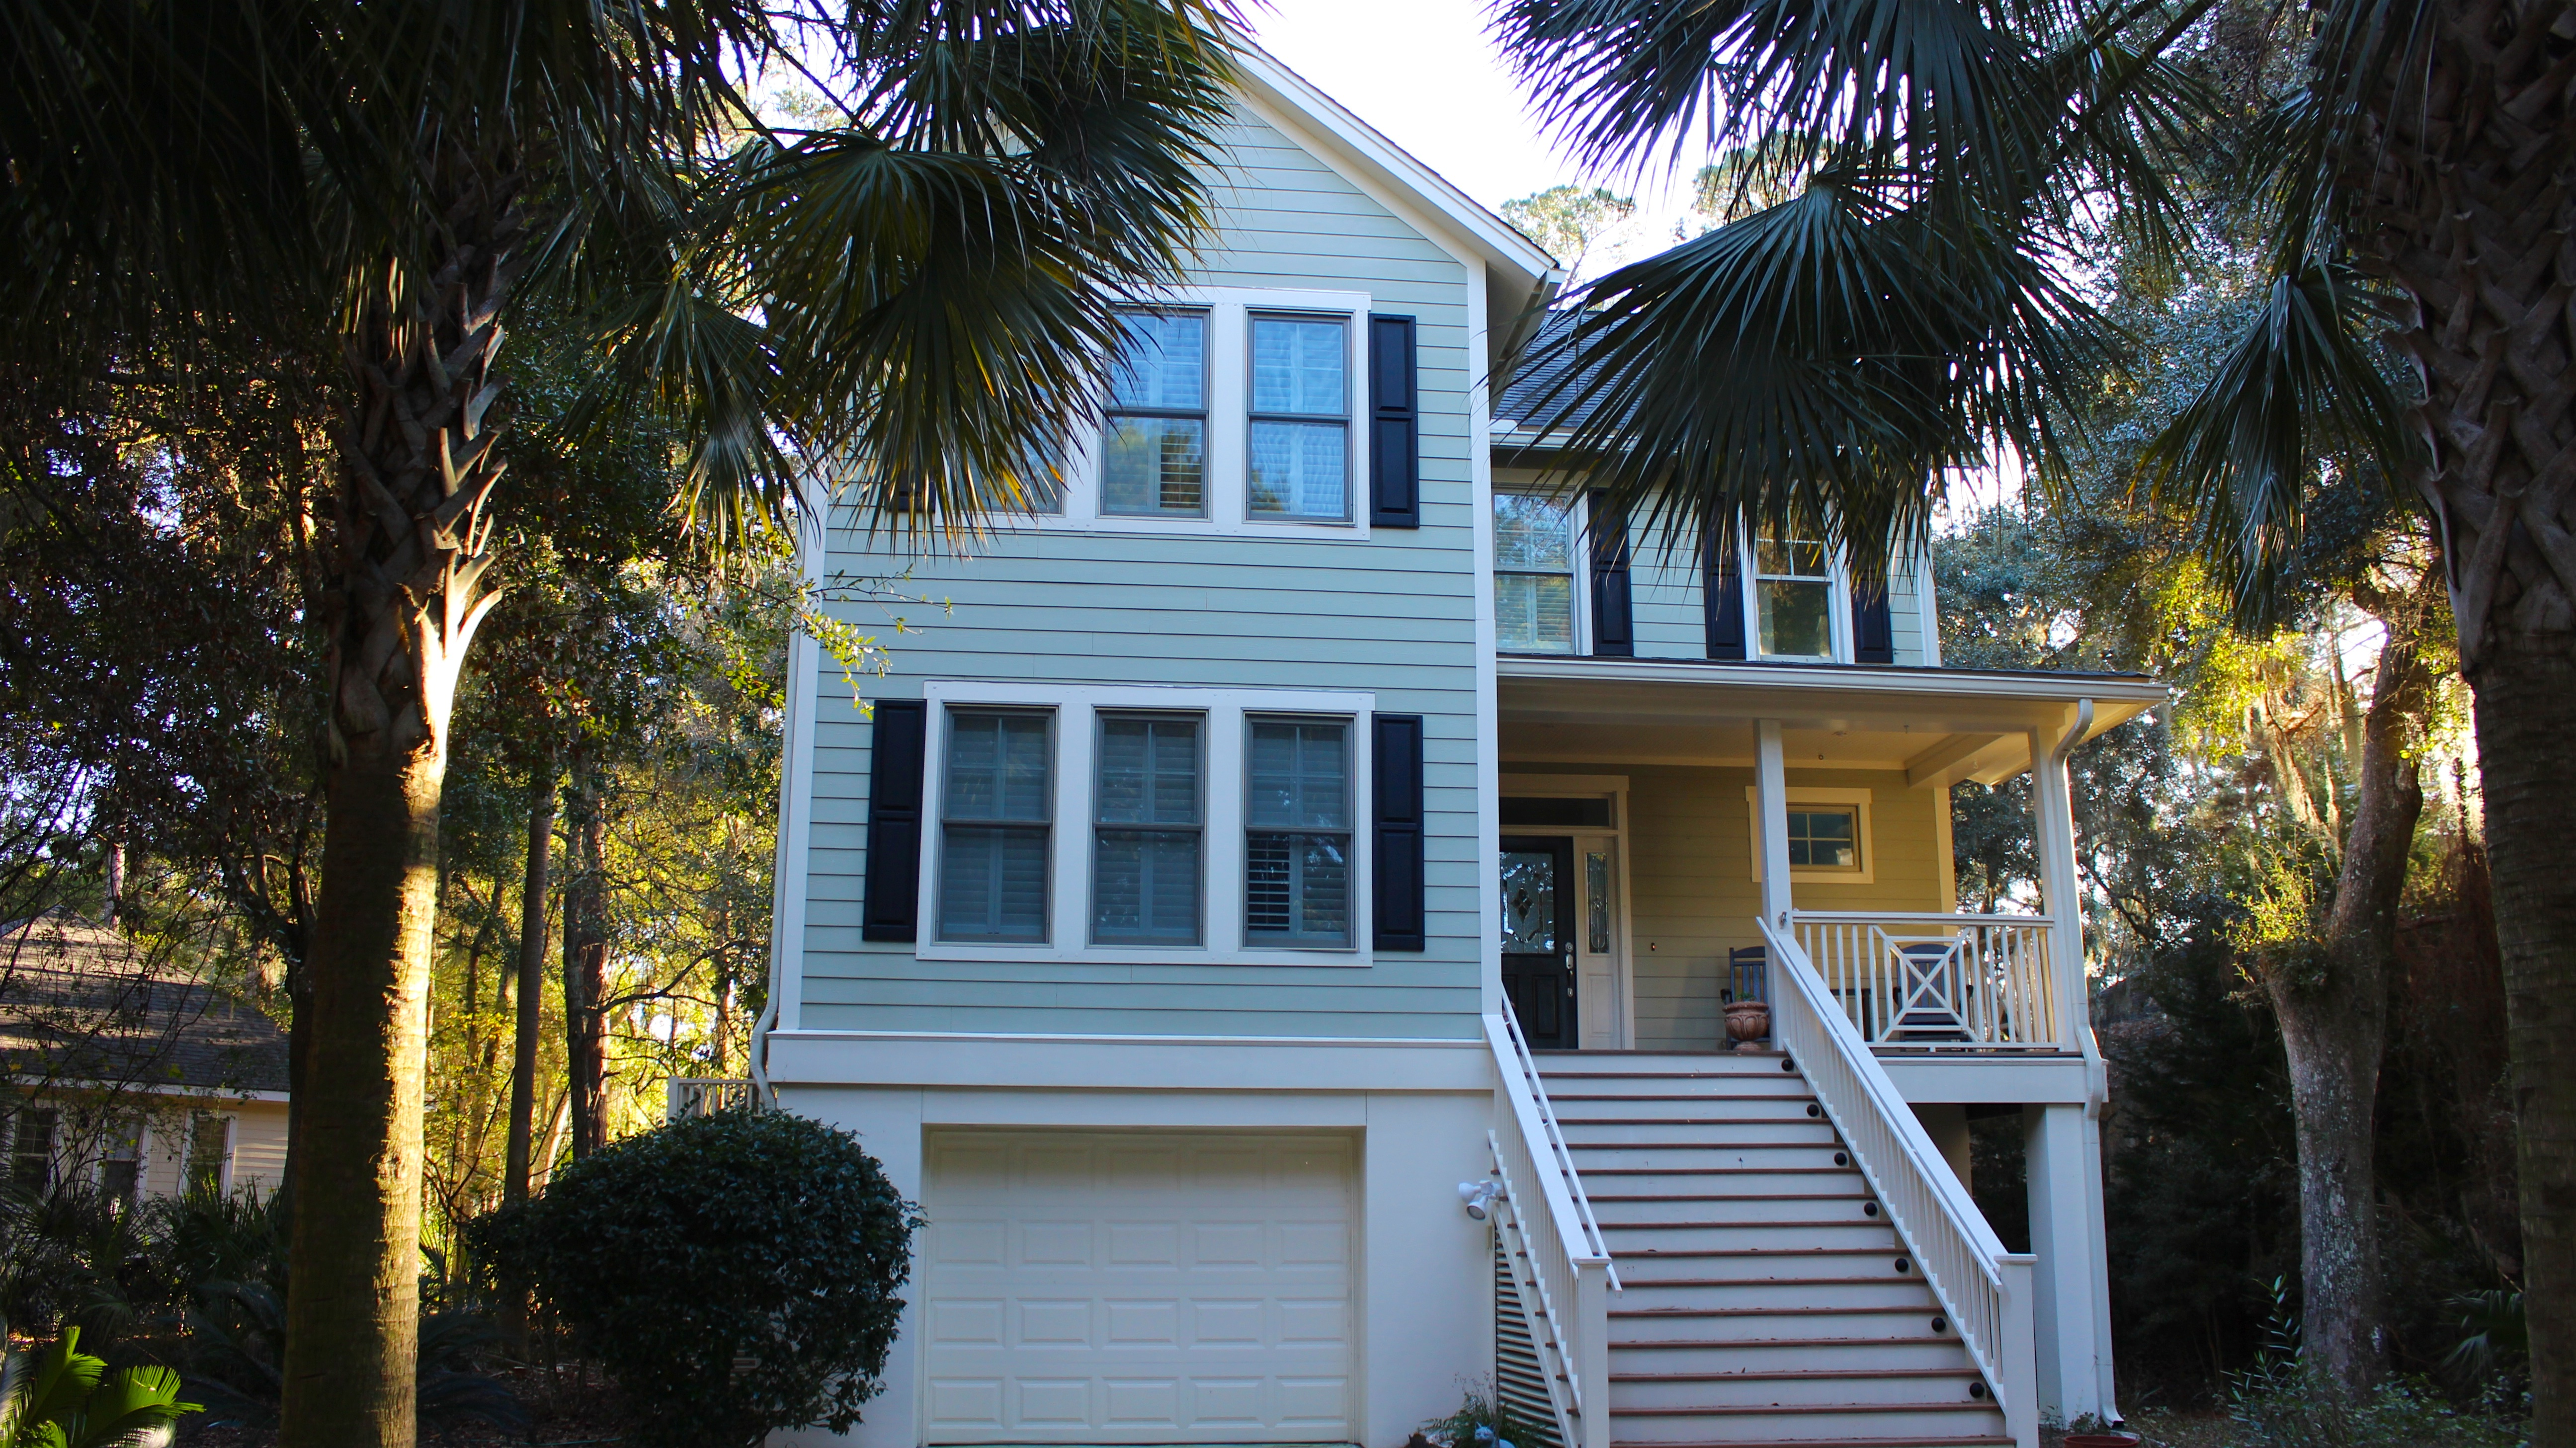 Welcome to this Charleston-style home with great lake views.